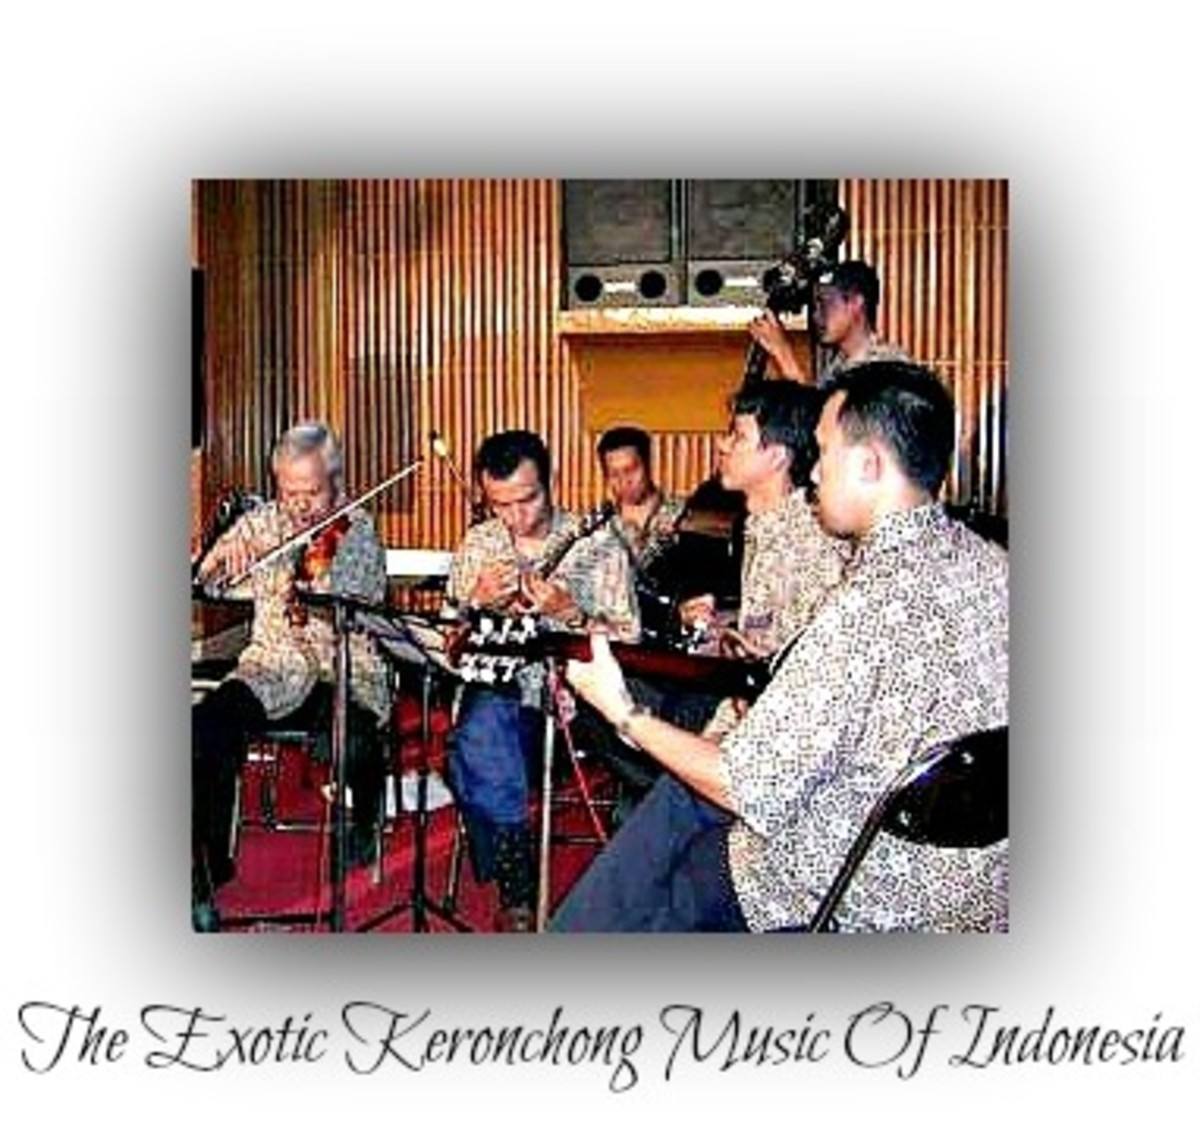 Keroncong Music Of Indonesia